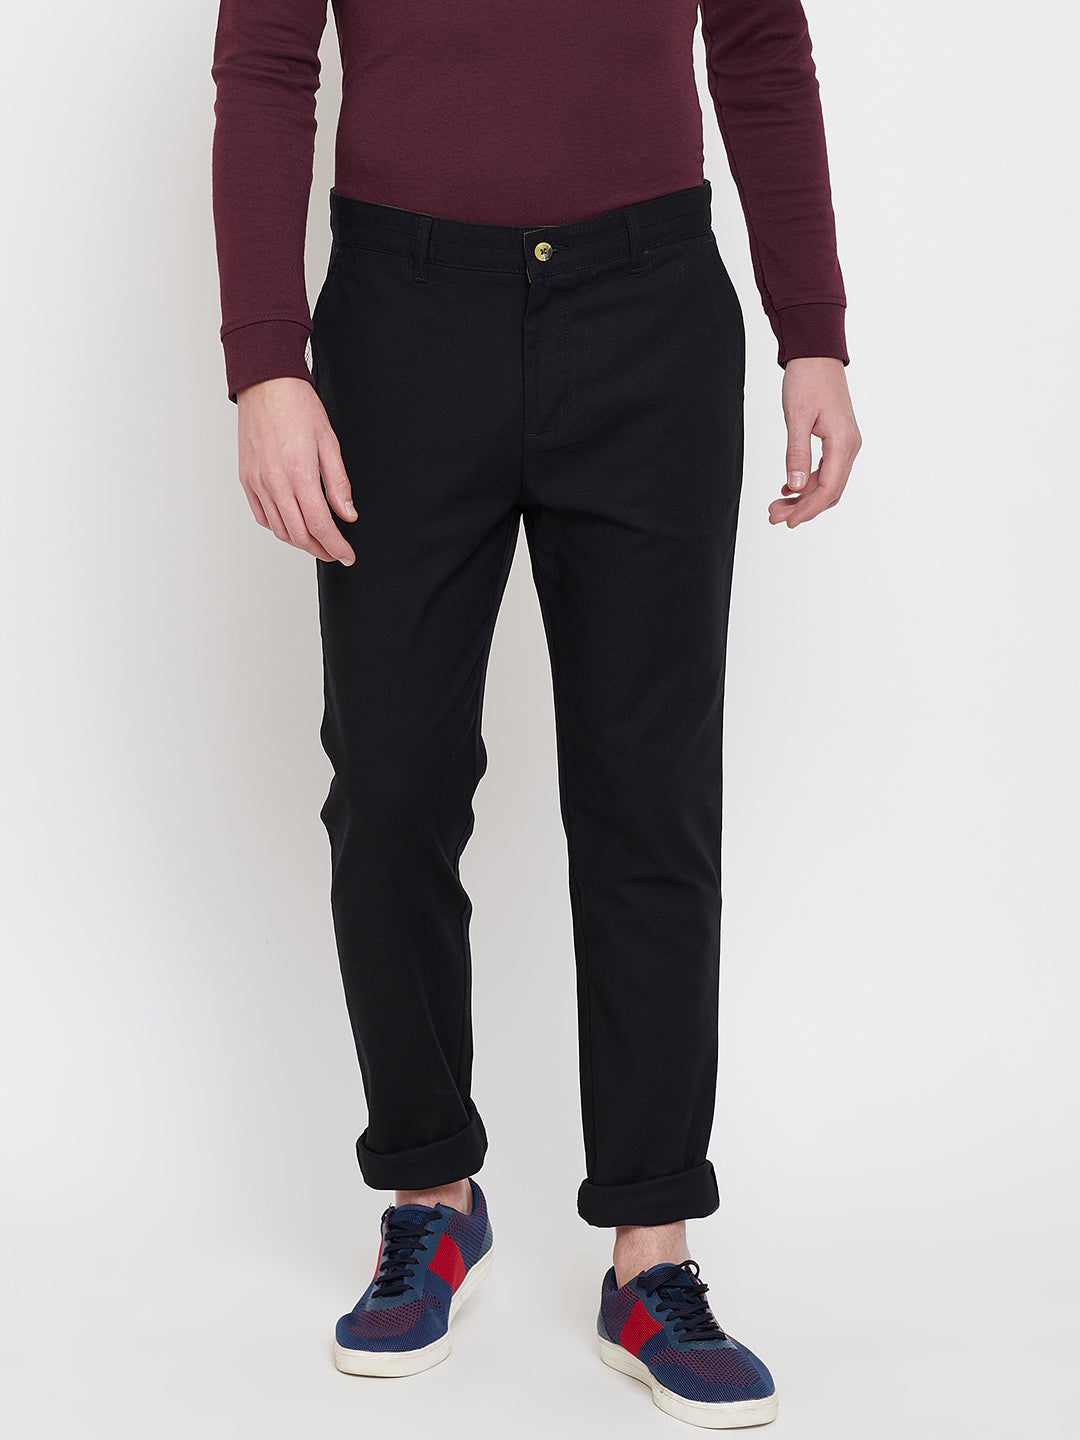 JUMP USA Men Black Casual Slim Fit Trousers - JUMP USA